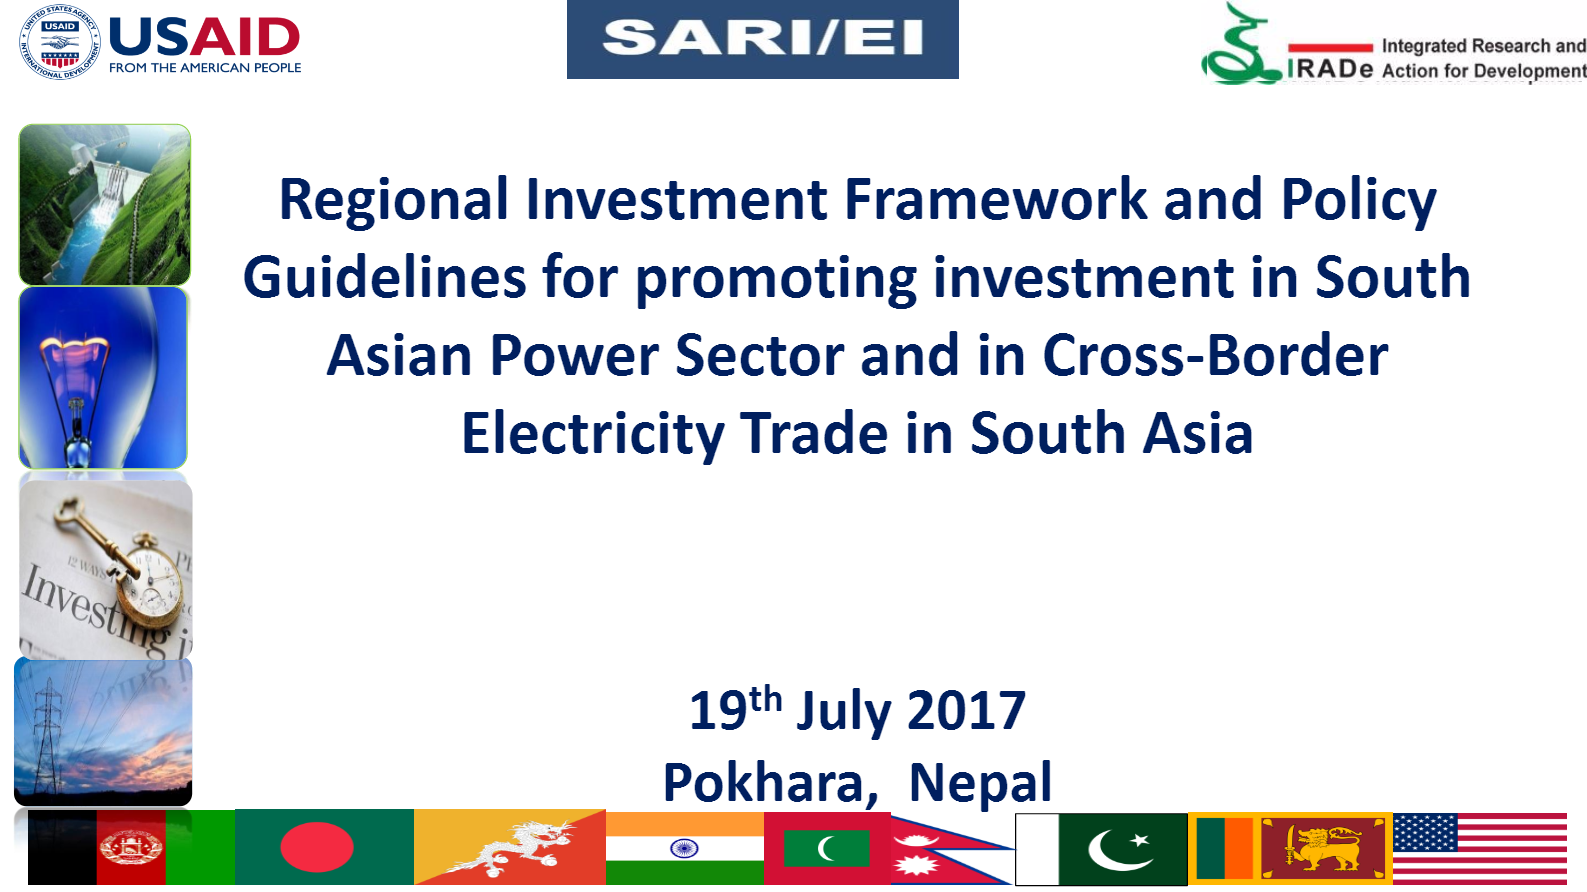 Regional-Investment-Framework-and-Policy-Guidelines-for-promoting-investment-in-South-Asian-Power-Sector-and-in-Cross-Border-Electricity-Trade-in-South-Asia-19th-July2017-Delloite-Rajiv-SARI-EI-IRADE